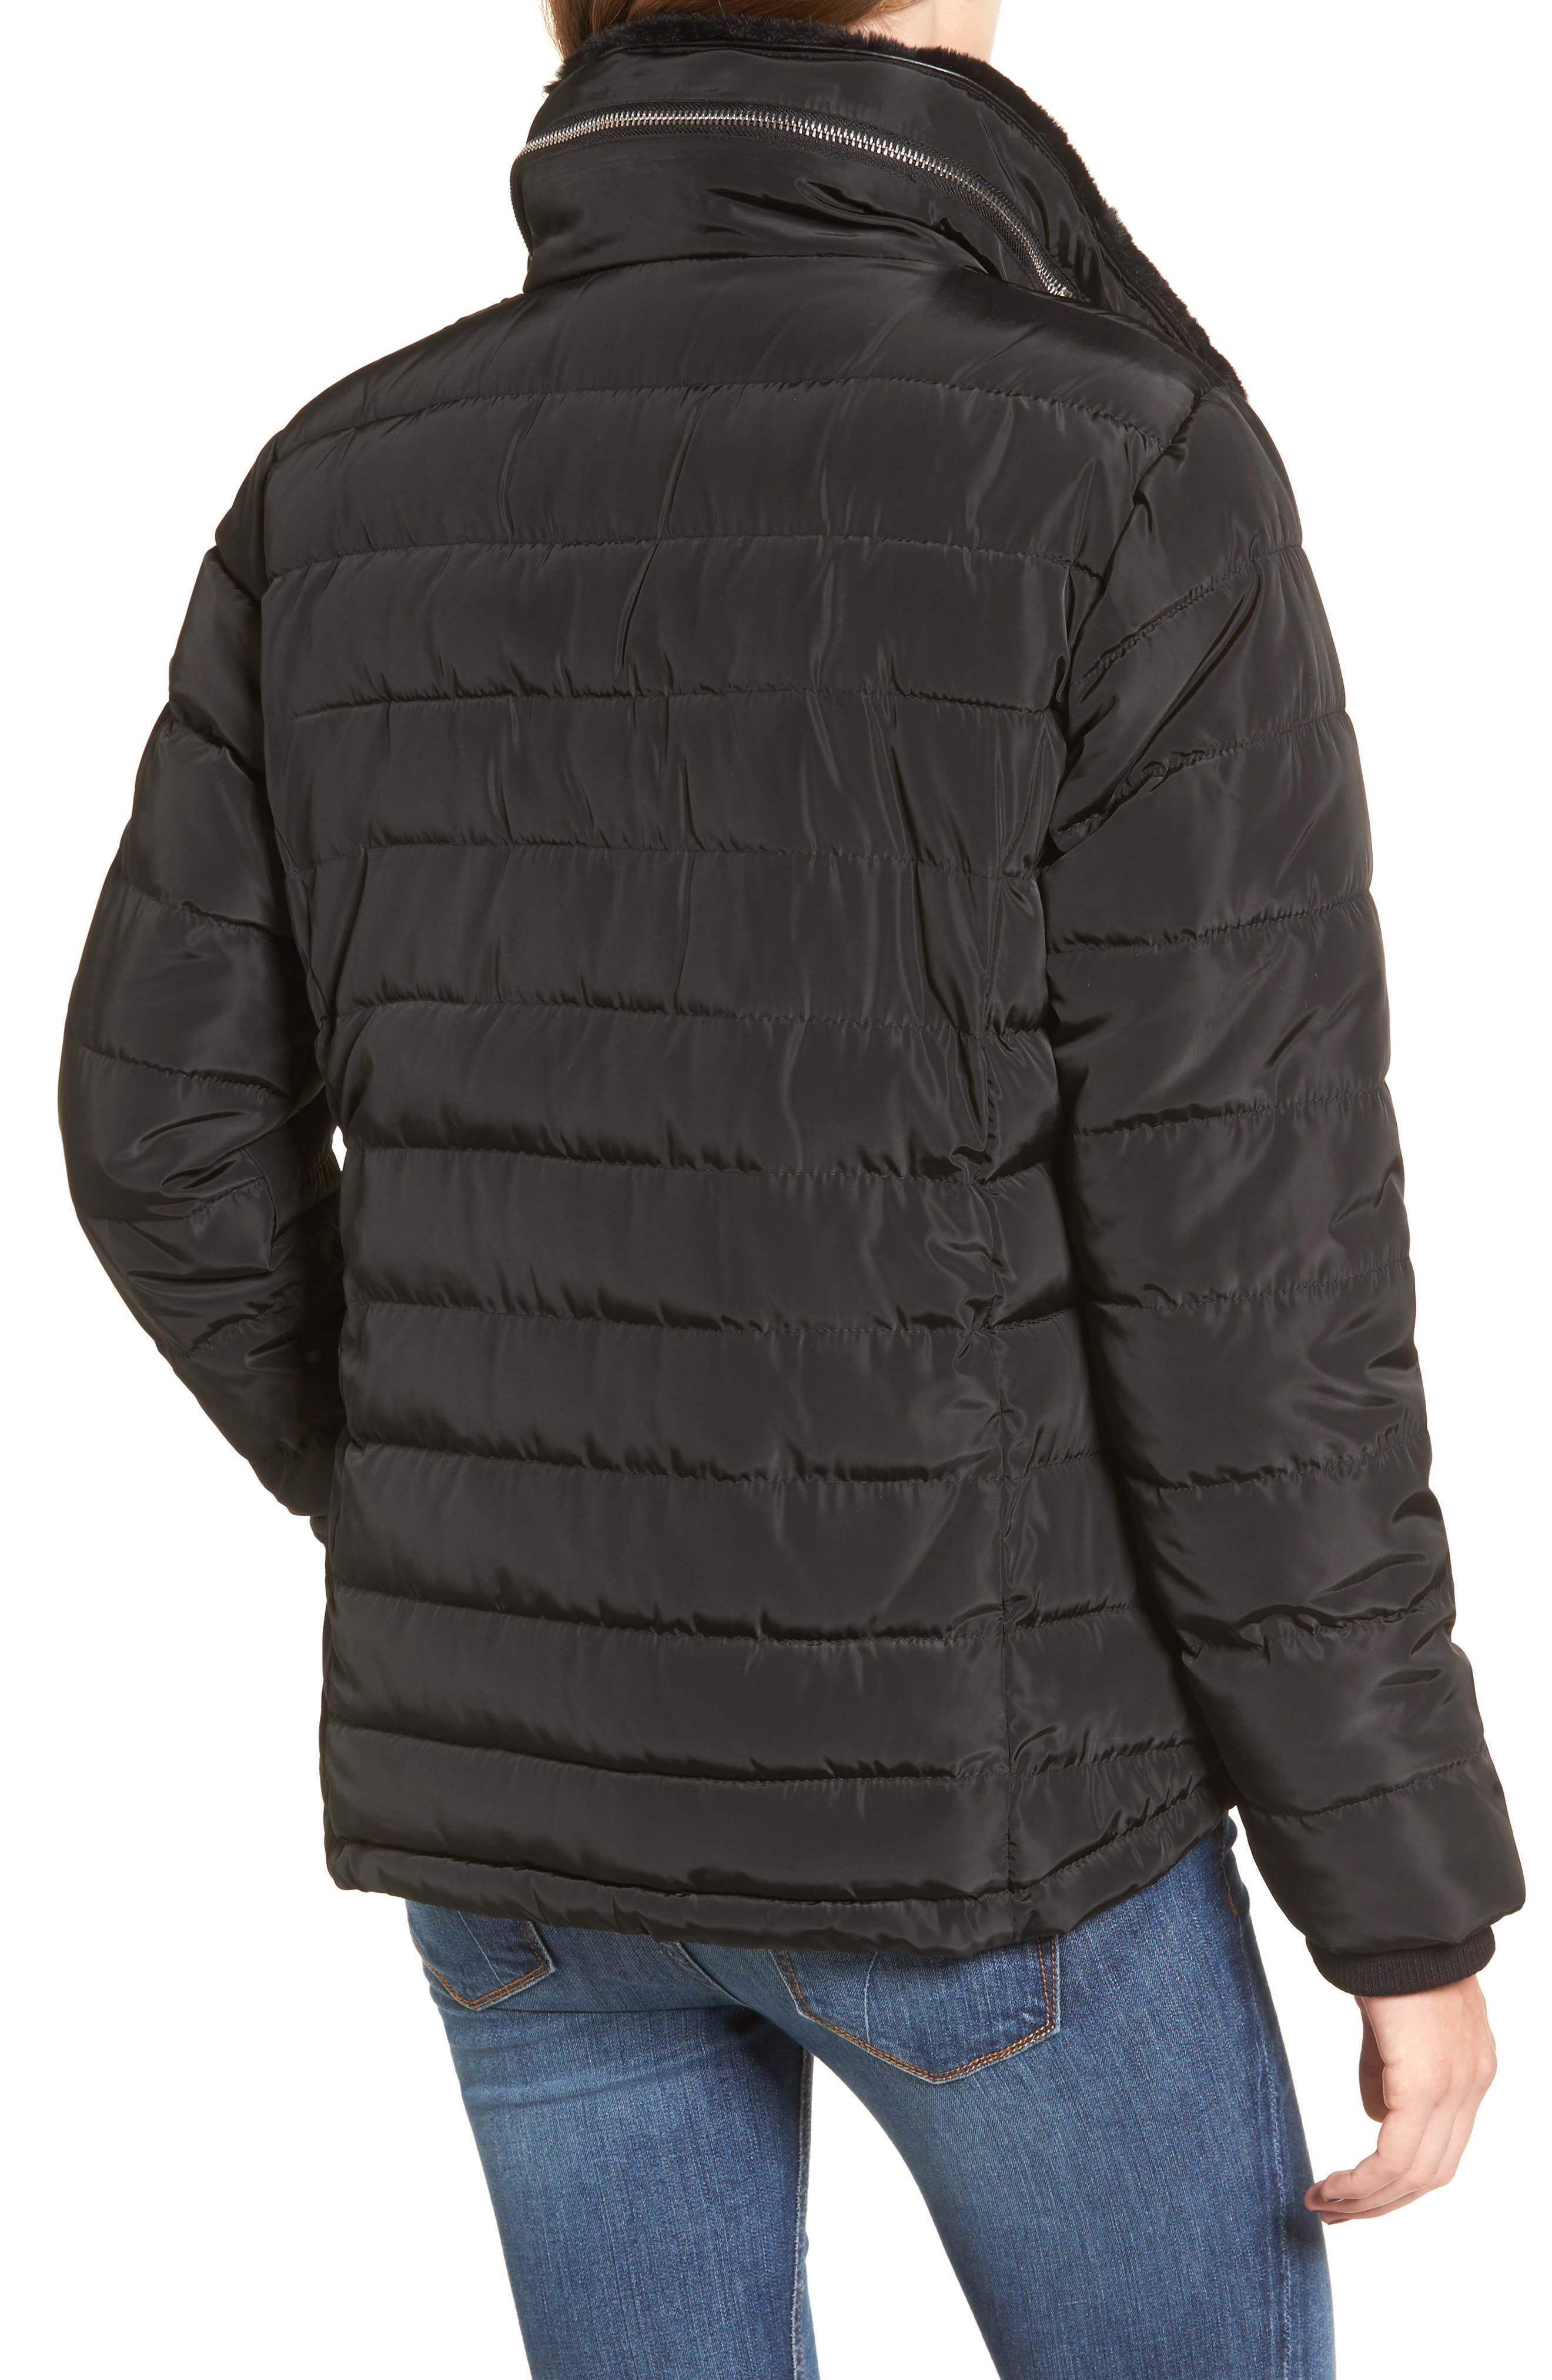 Puffer Jacket with Faux Fur,                             Alternate thumbnail 2, color,                             Black